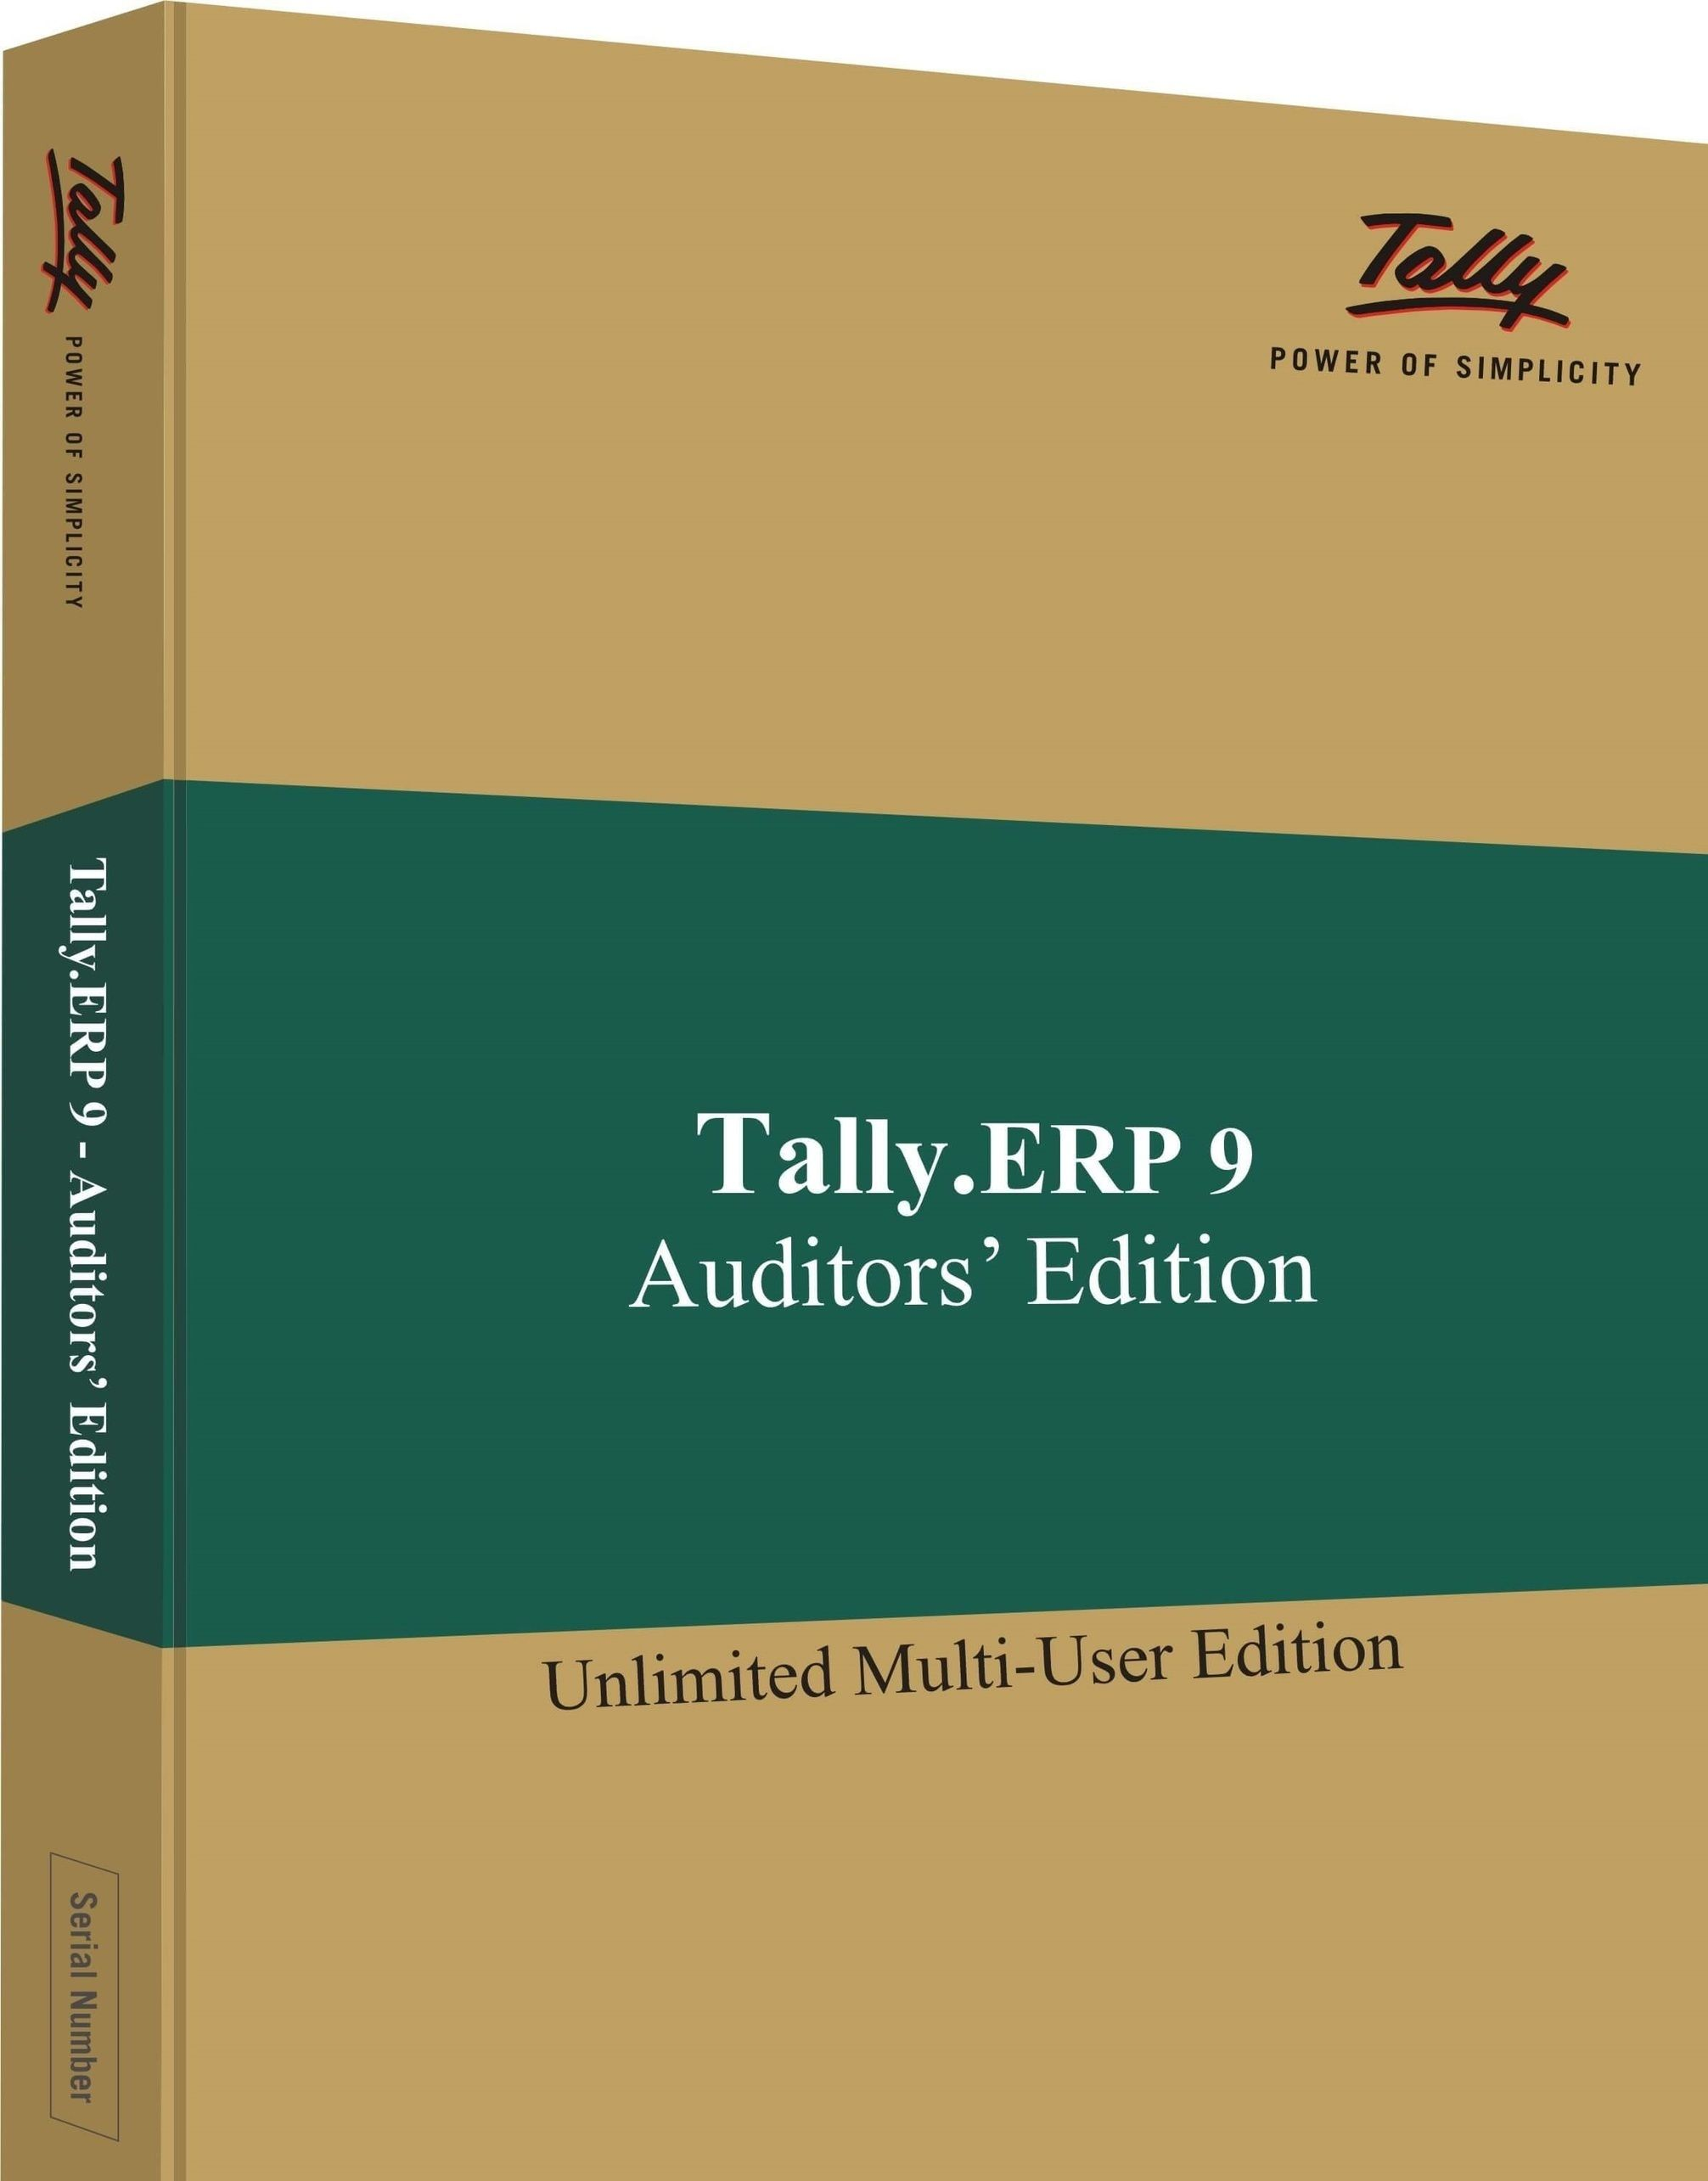 tally erp 9 version 6.0.3 free download